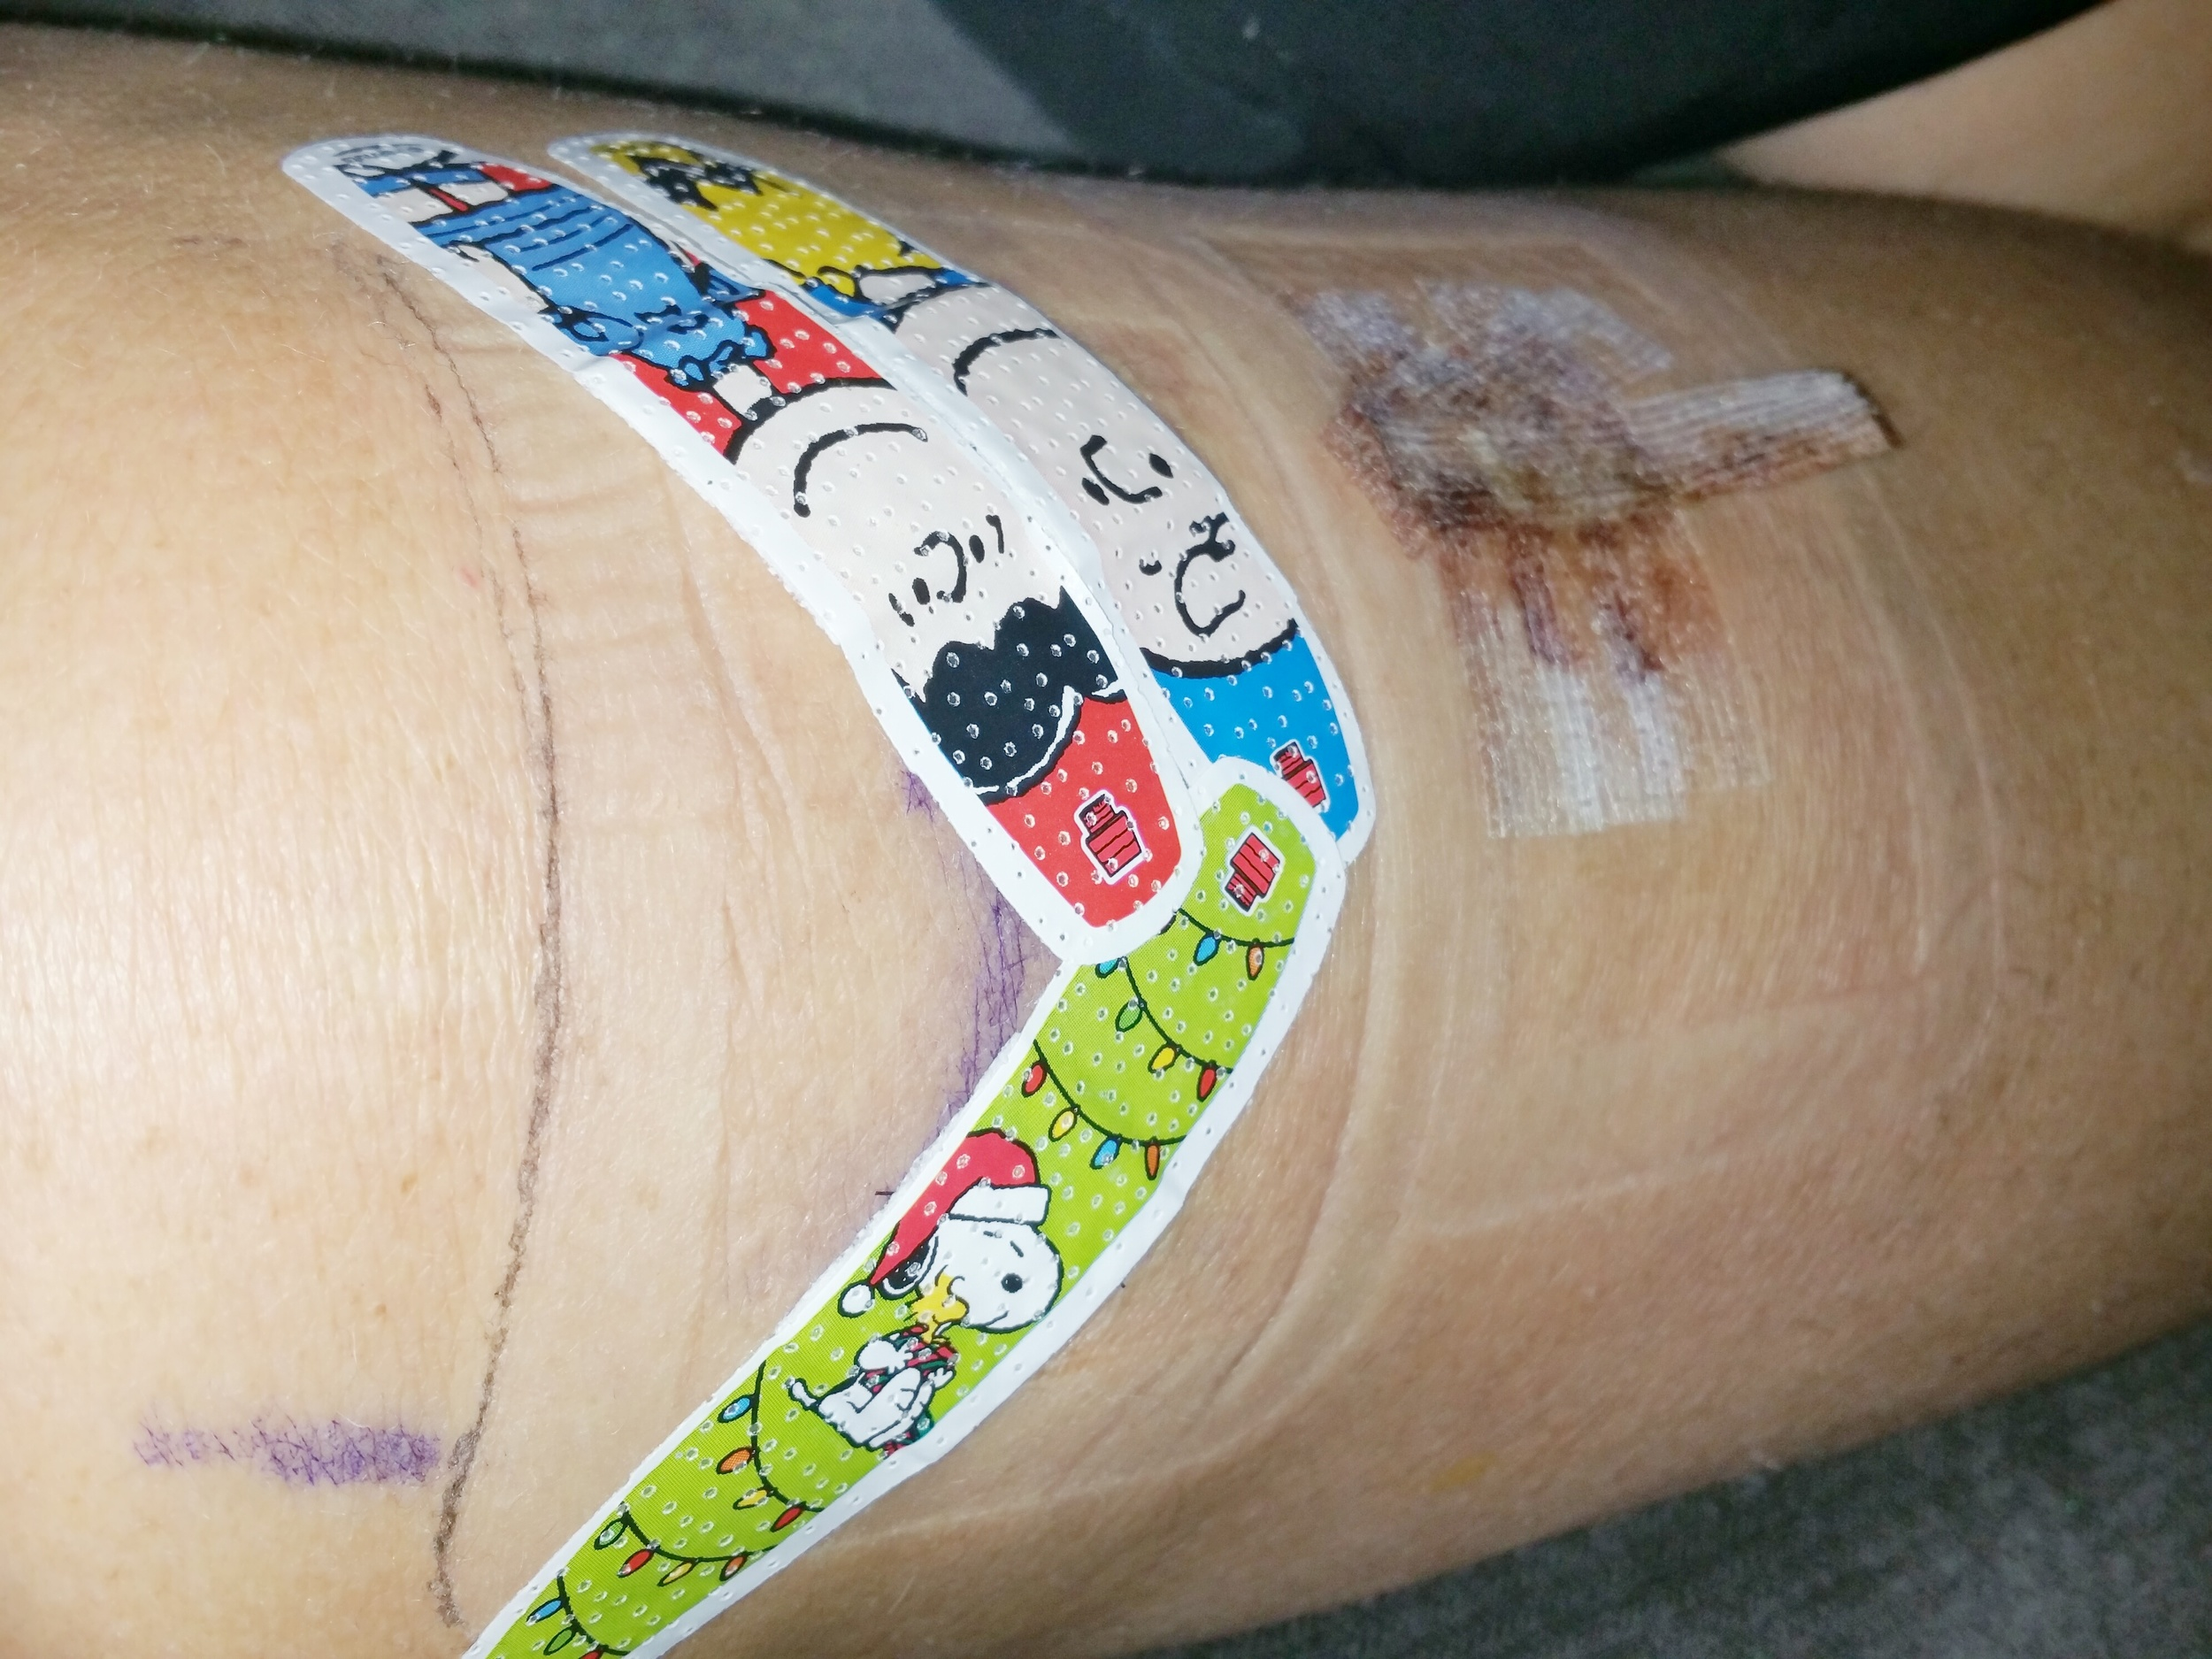 Because regular band-aids are boring #snoopy